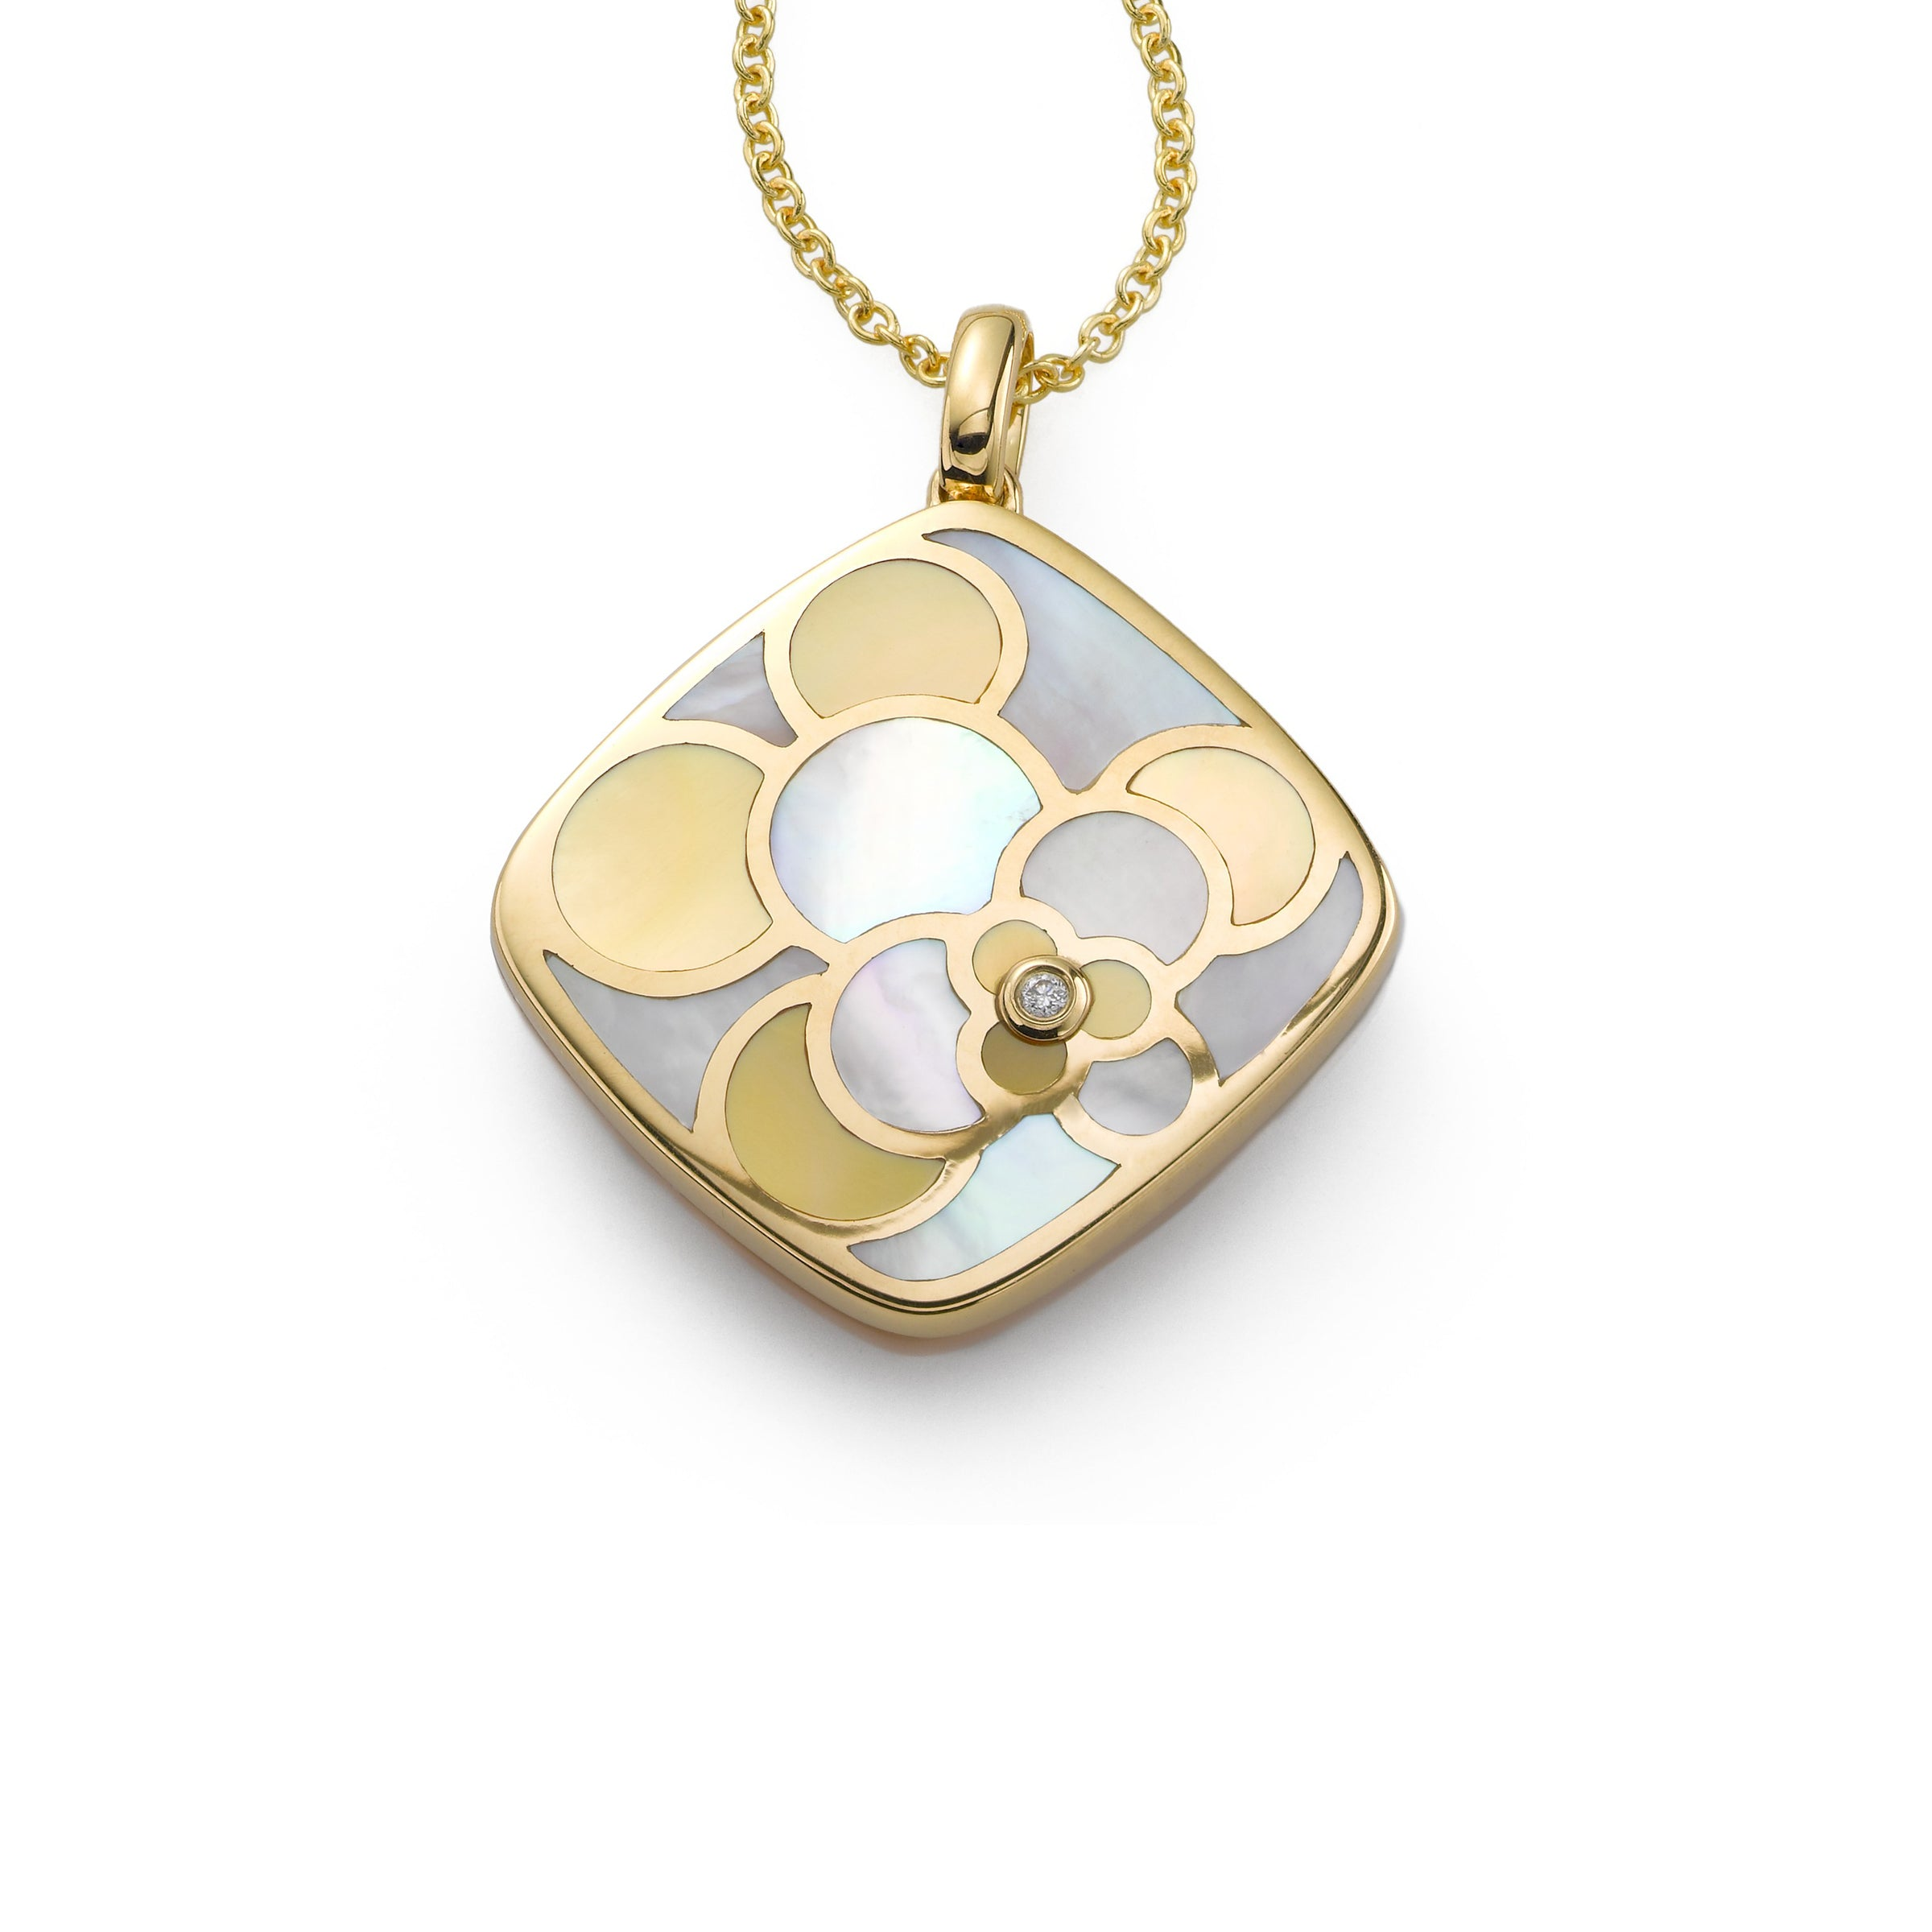 Yellow and White Mother of Pearl Pendant, 18K Yellow Gold